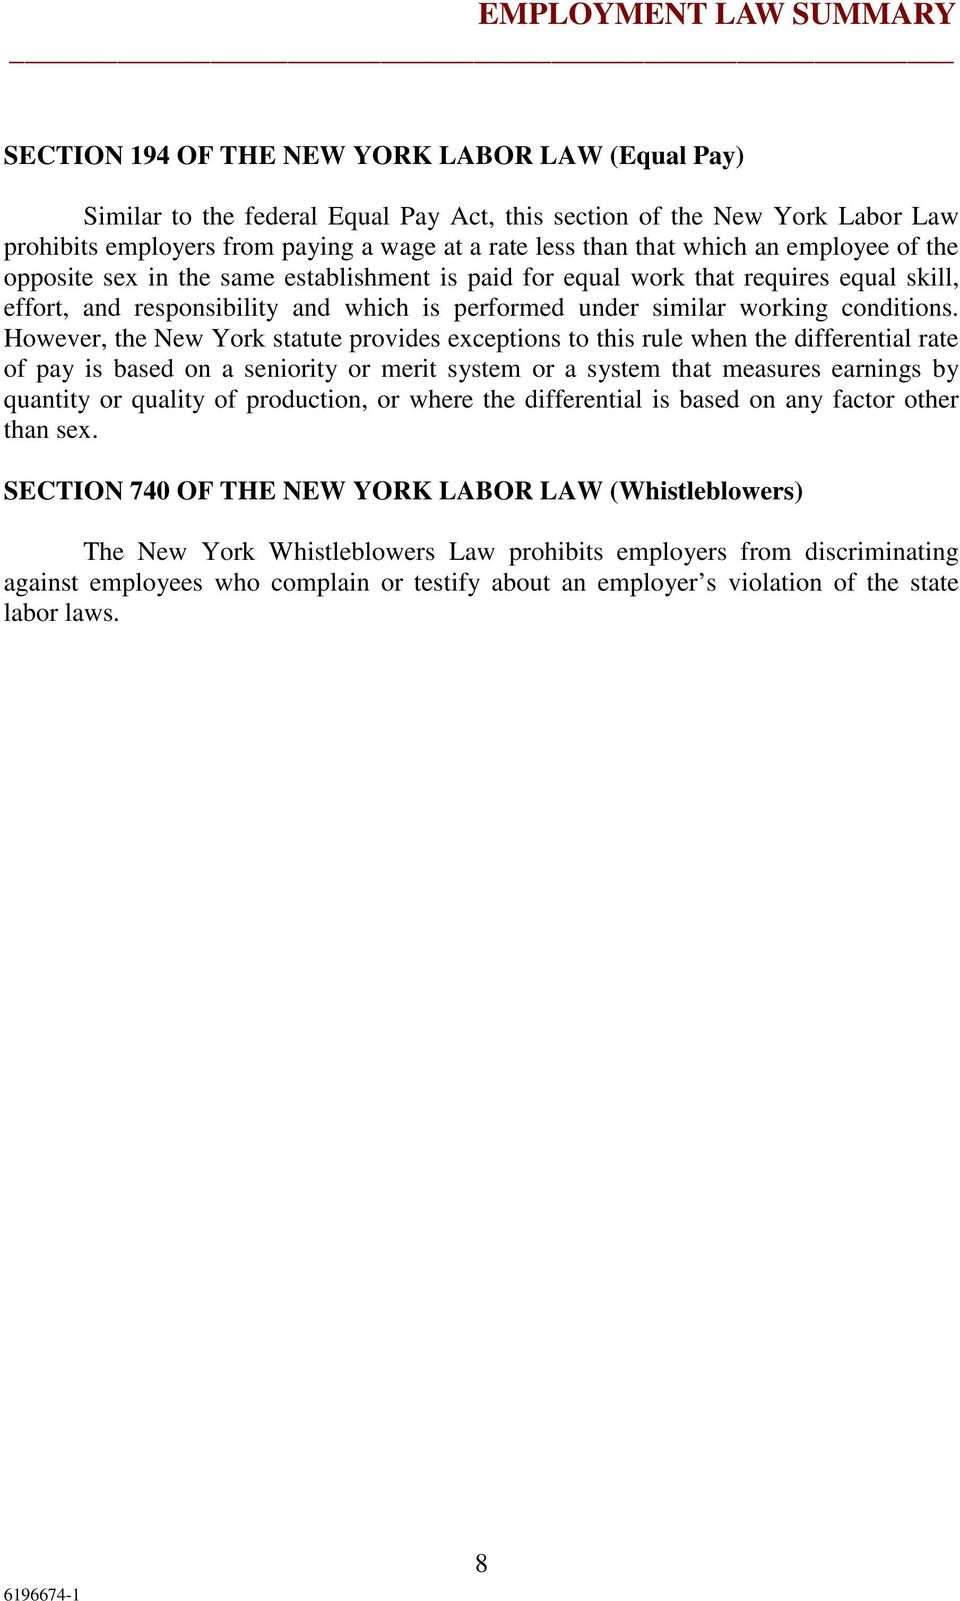 However, the New York statute provides exceptions to this rule when the differential rate of pay is based on a seniority or merit system or a system that measures earnings by quantity or quality of